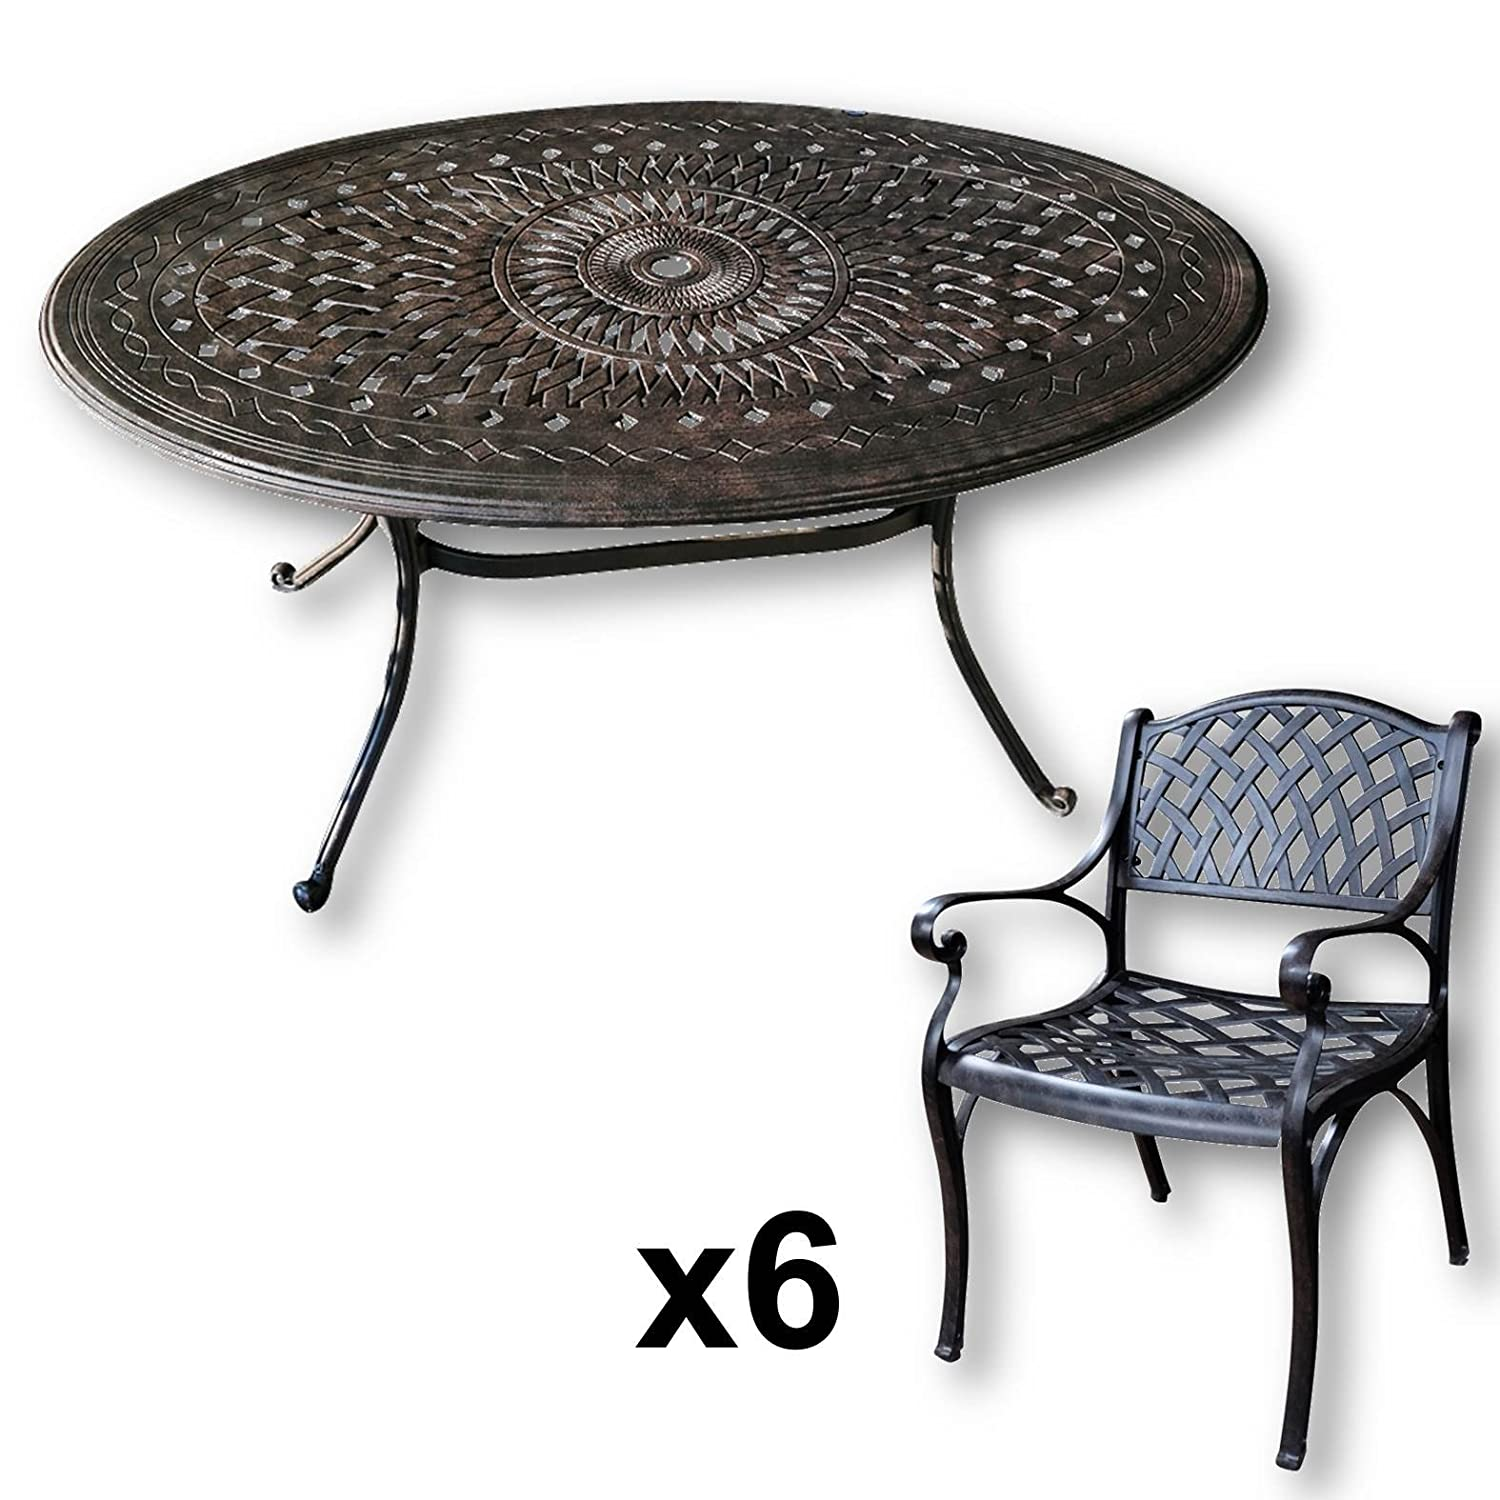 lazy susan emily 150 x 95 cm ovaler gartentisch mit 6. Black Bedroom Furniture Sets. Home Design Ideas